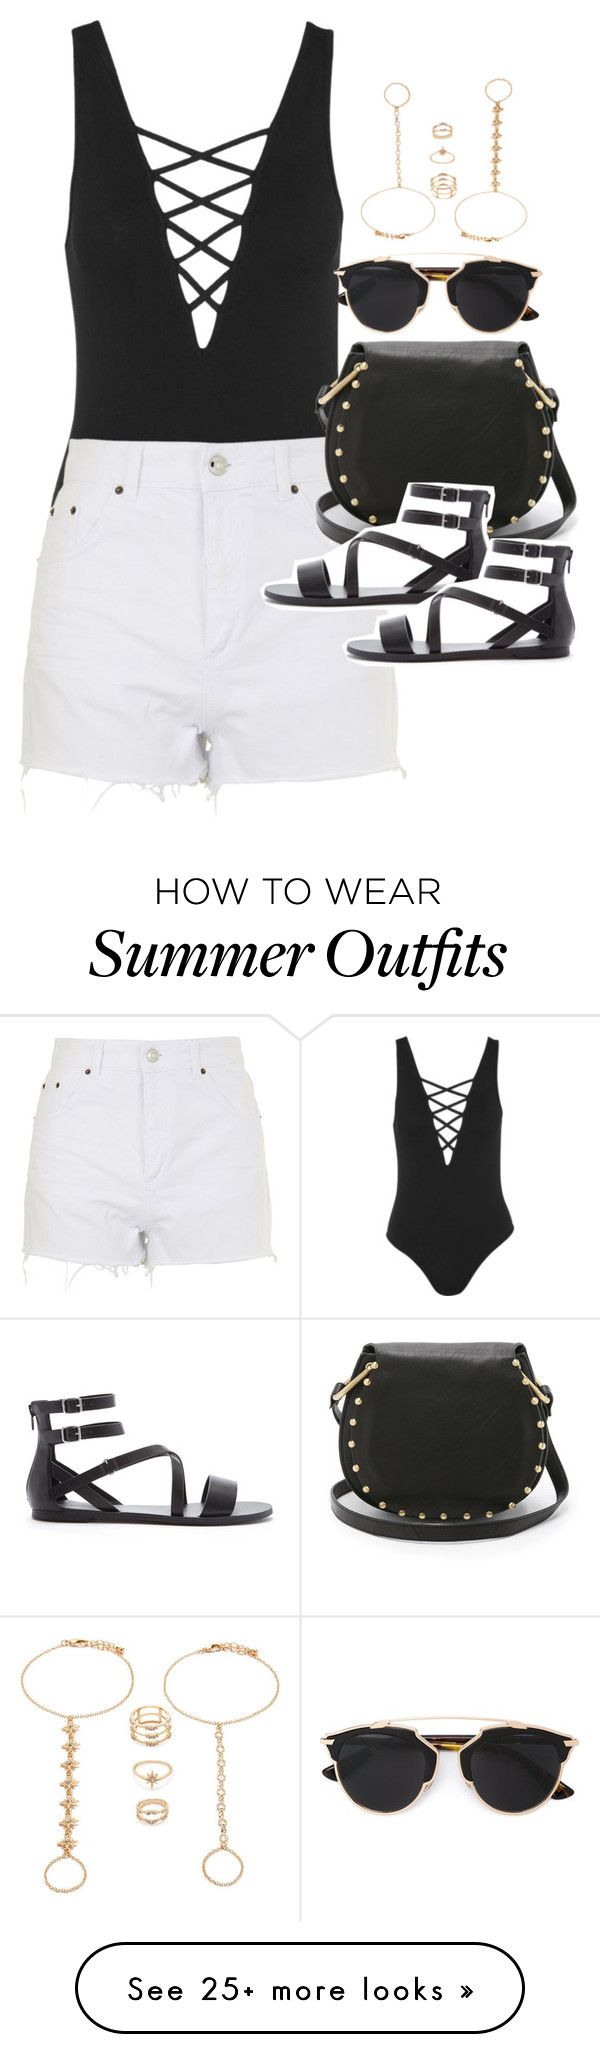 """""""Outfit for a music festival in summer"""" by ferned on Polyvore featuring Topshop, Cynthia Rowley, Forever 21 and Christian Dior"""